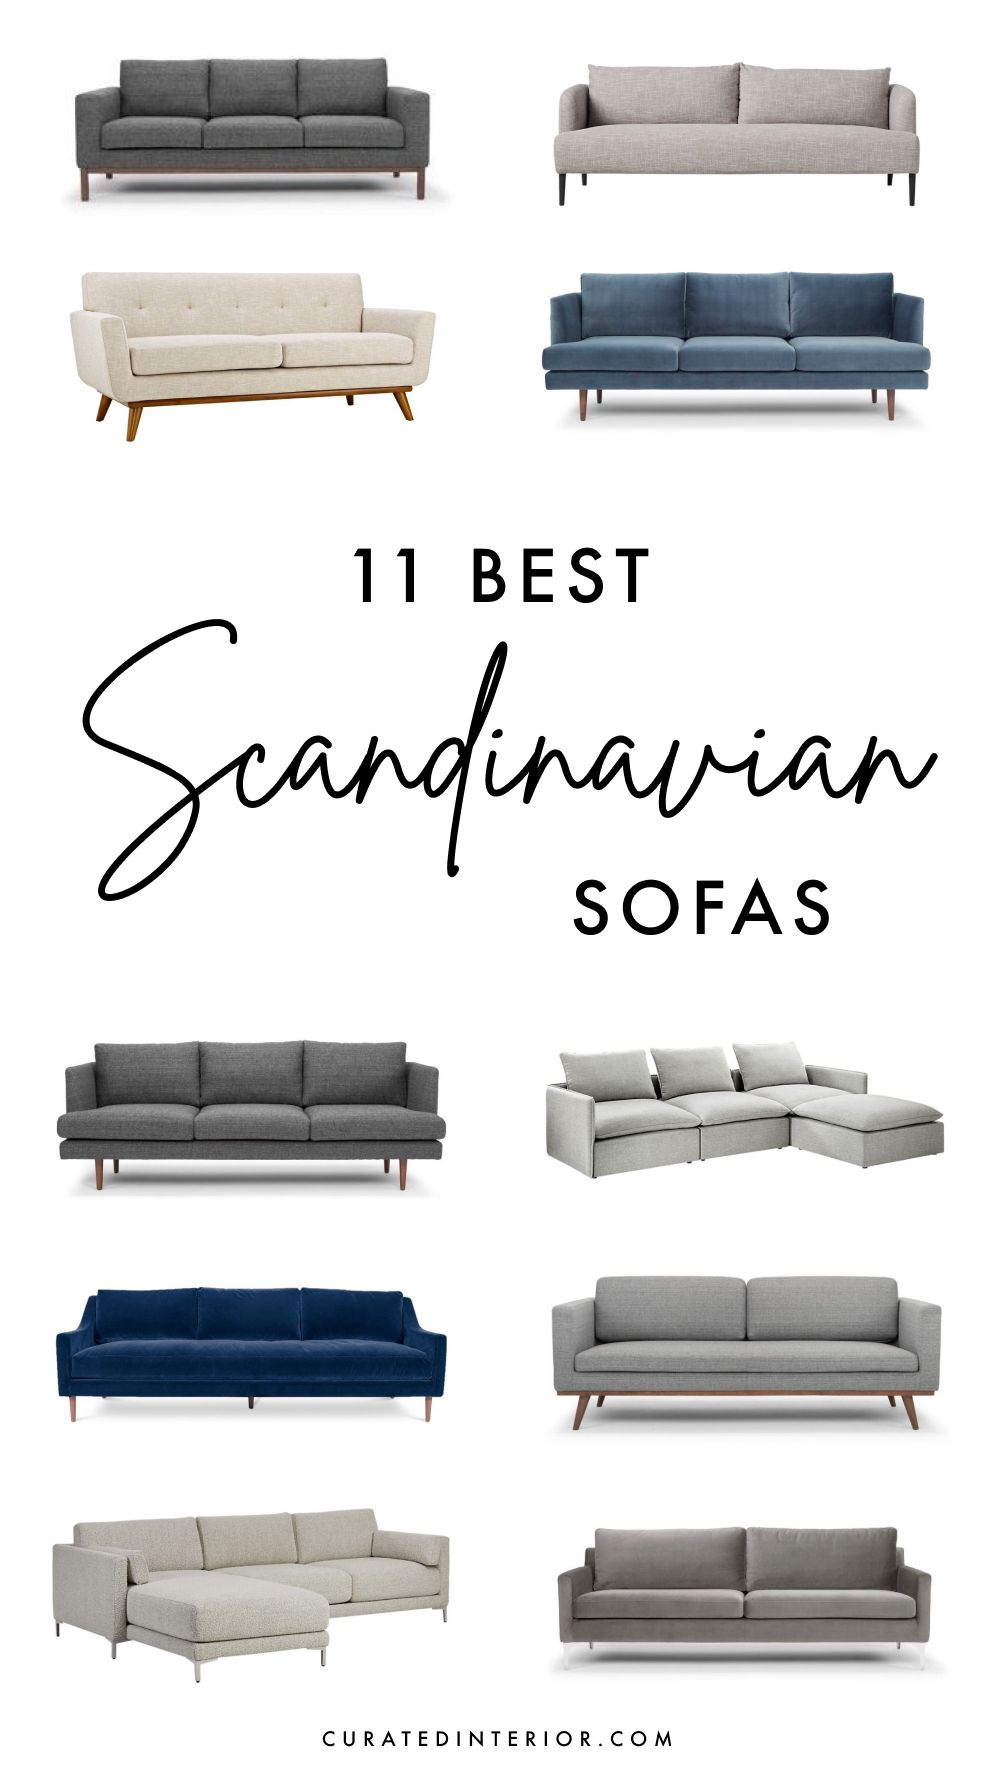 11 Best Scandinavian Sofas